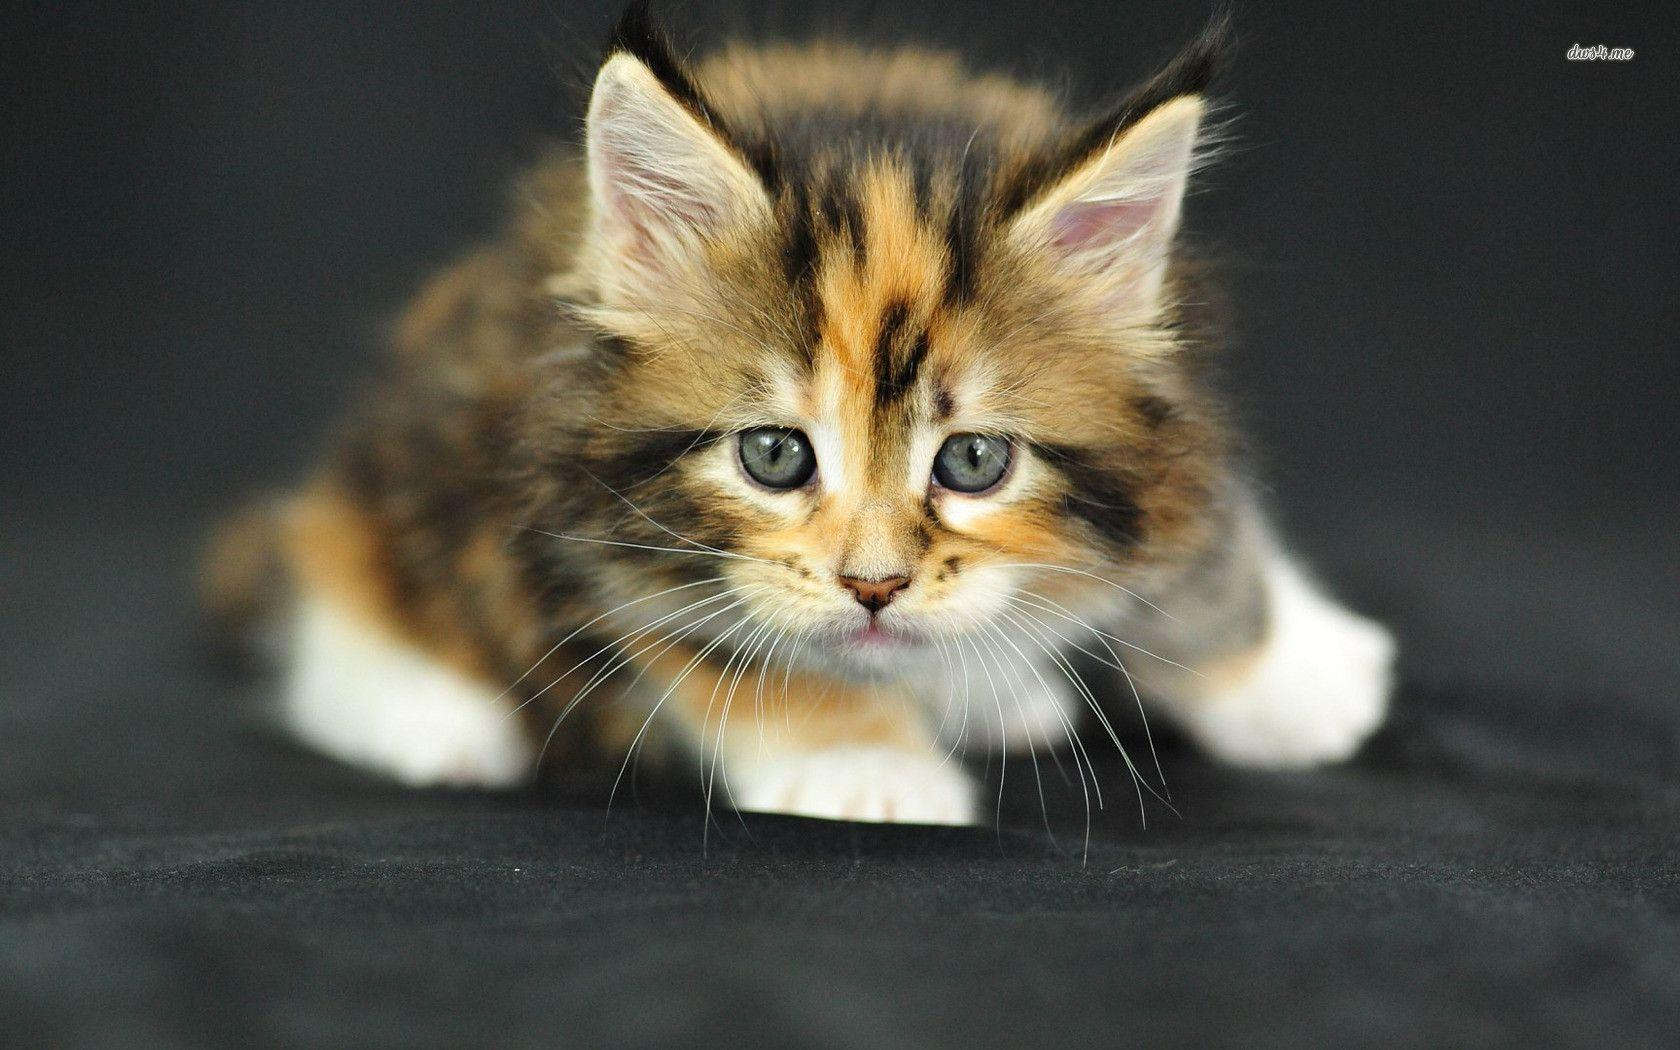 Cute Kitten wallpaper - Animal wallpapers - #